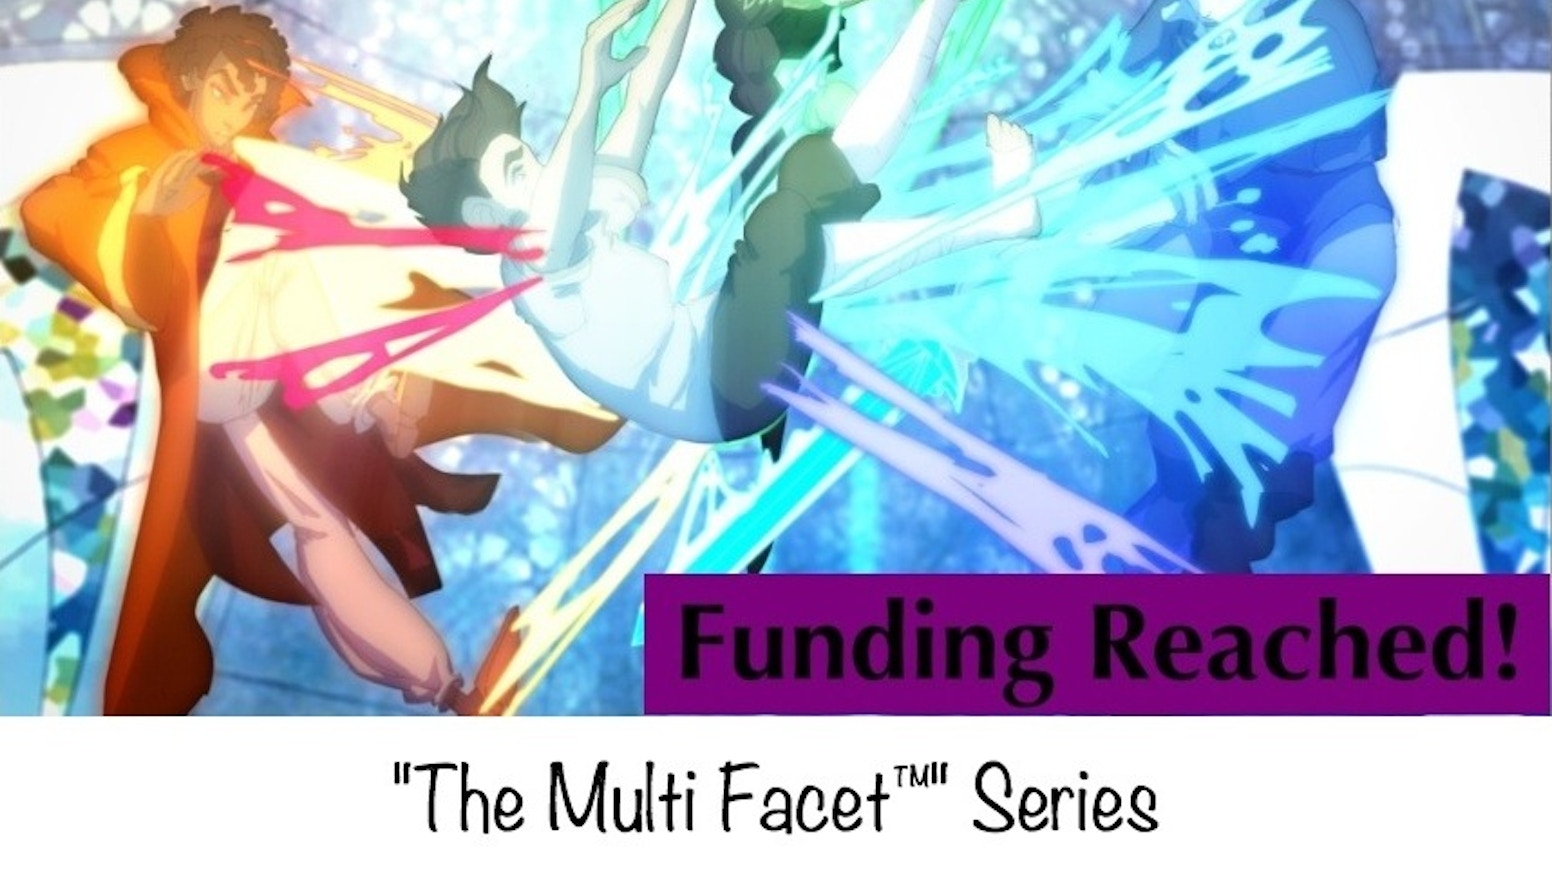 Our second Kickstarter is now live! For project history also visit www.themultifacet.com